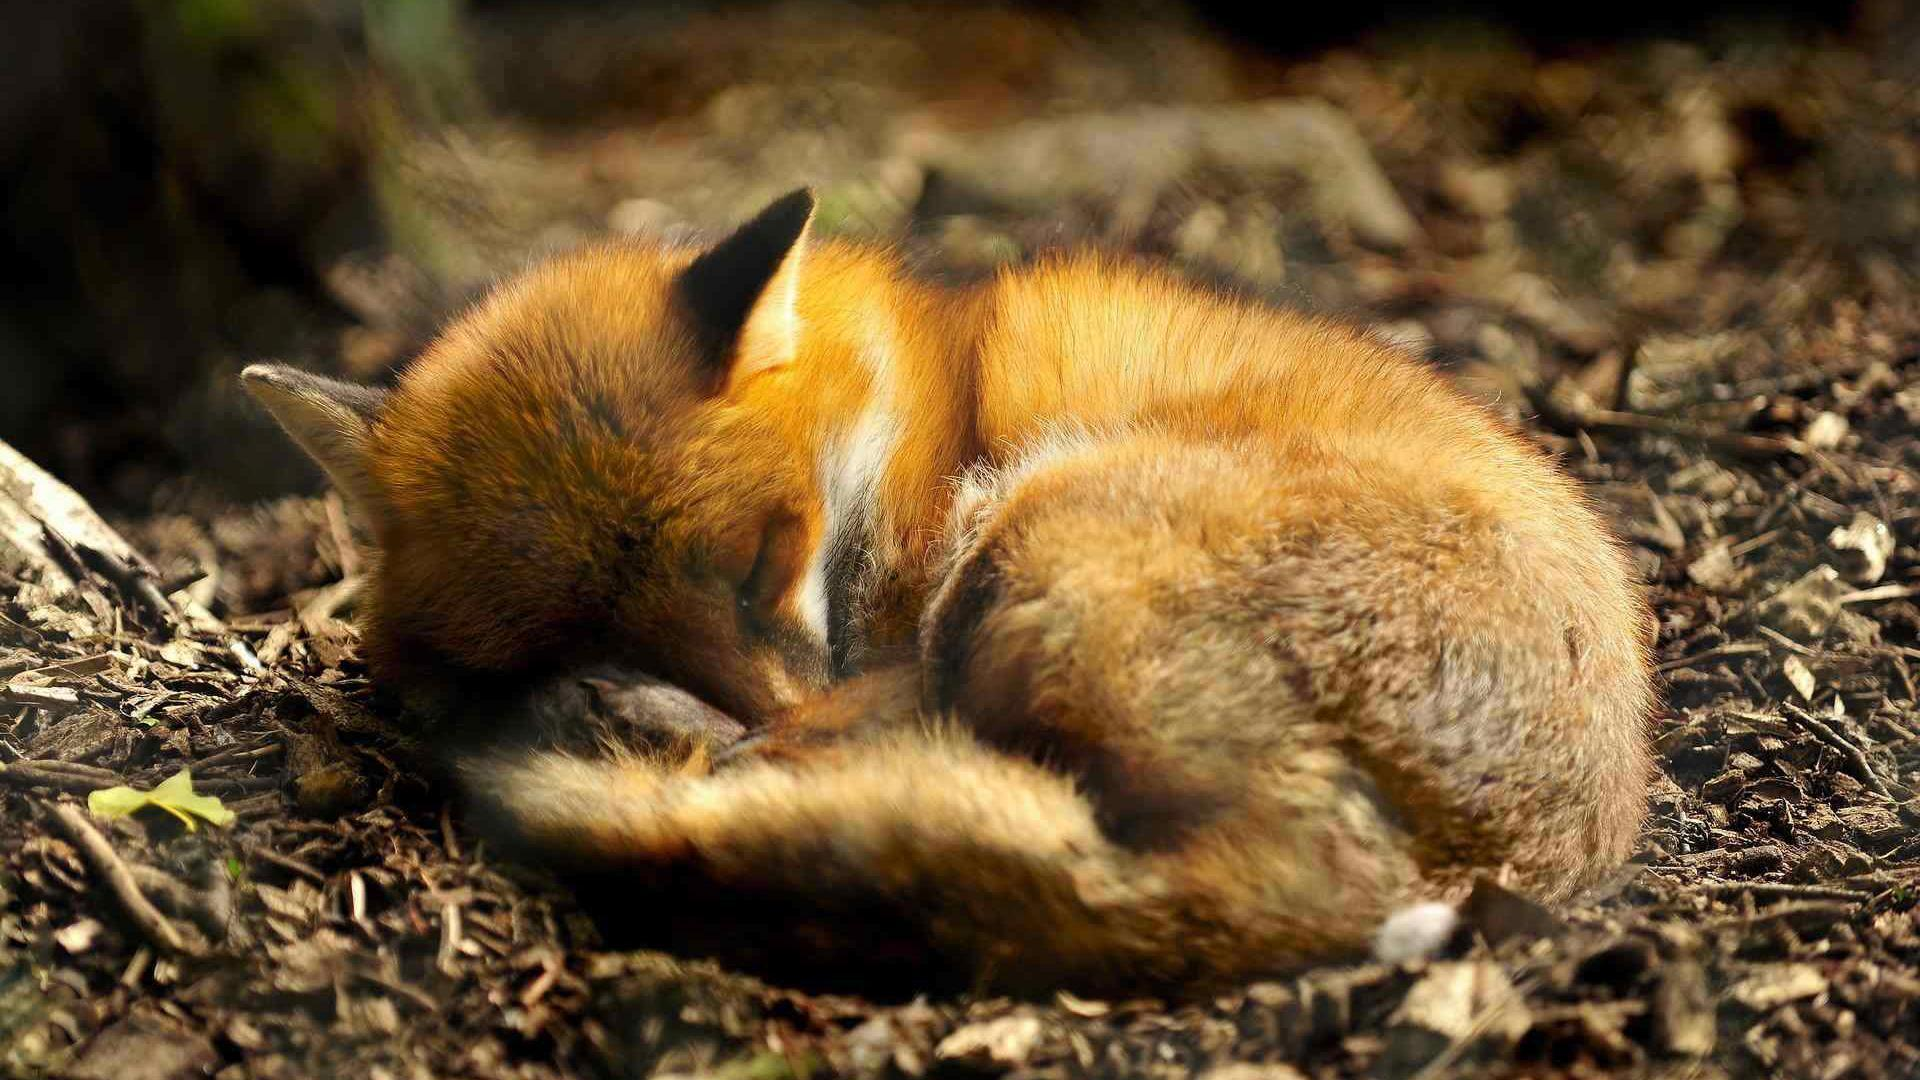 Cute Baby Foxes Wallpapers - Wallpaper Cave